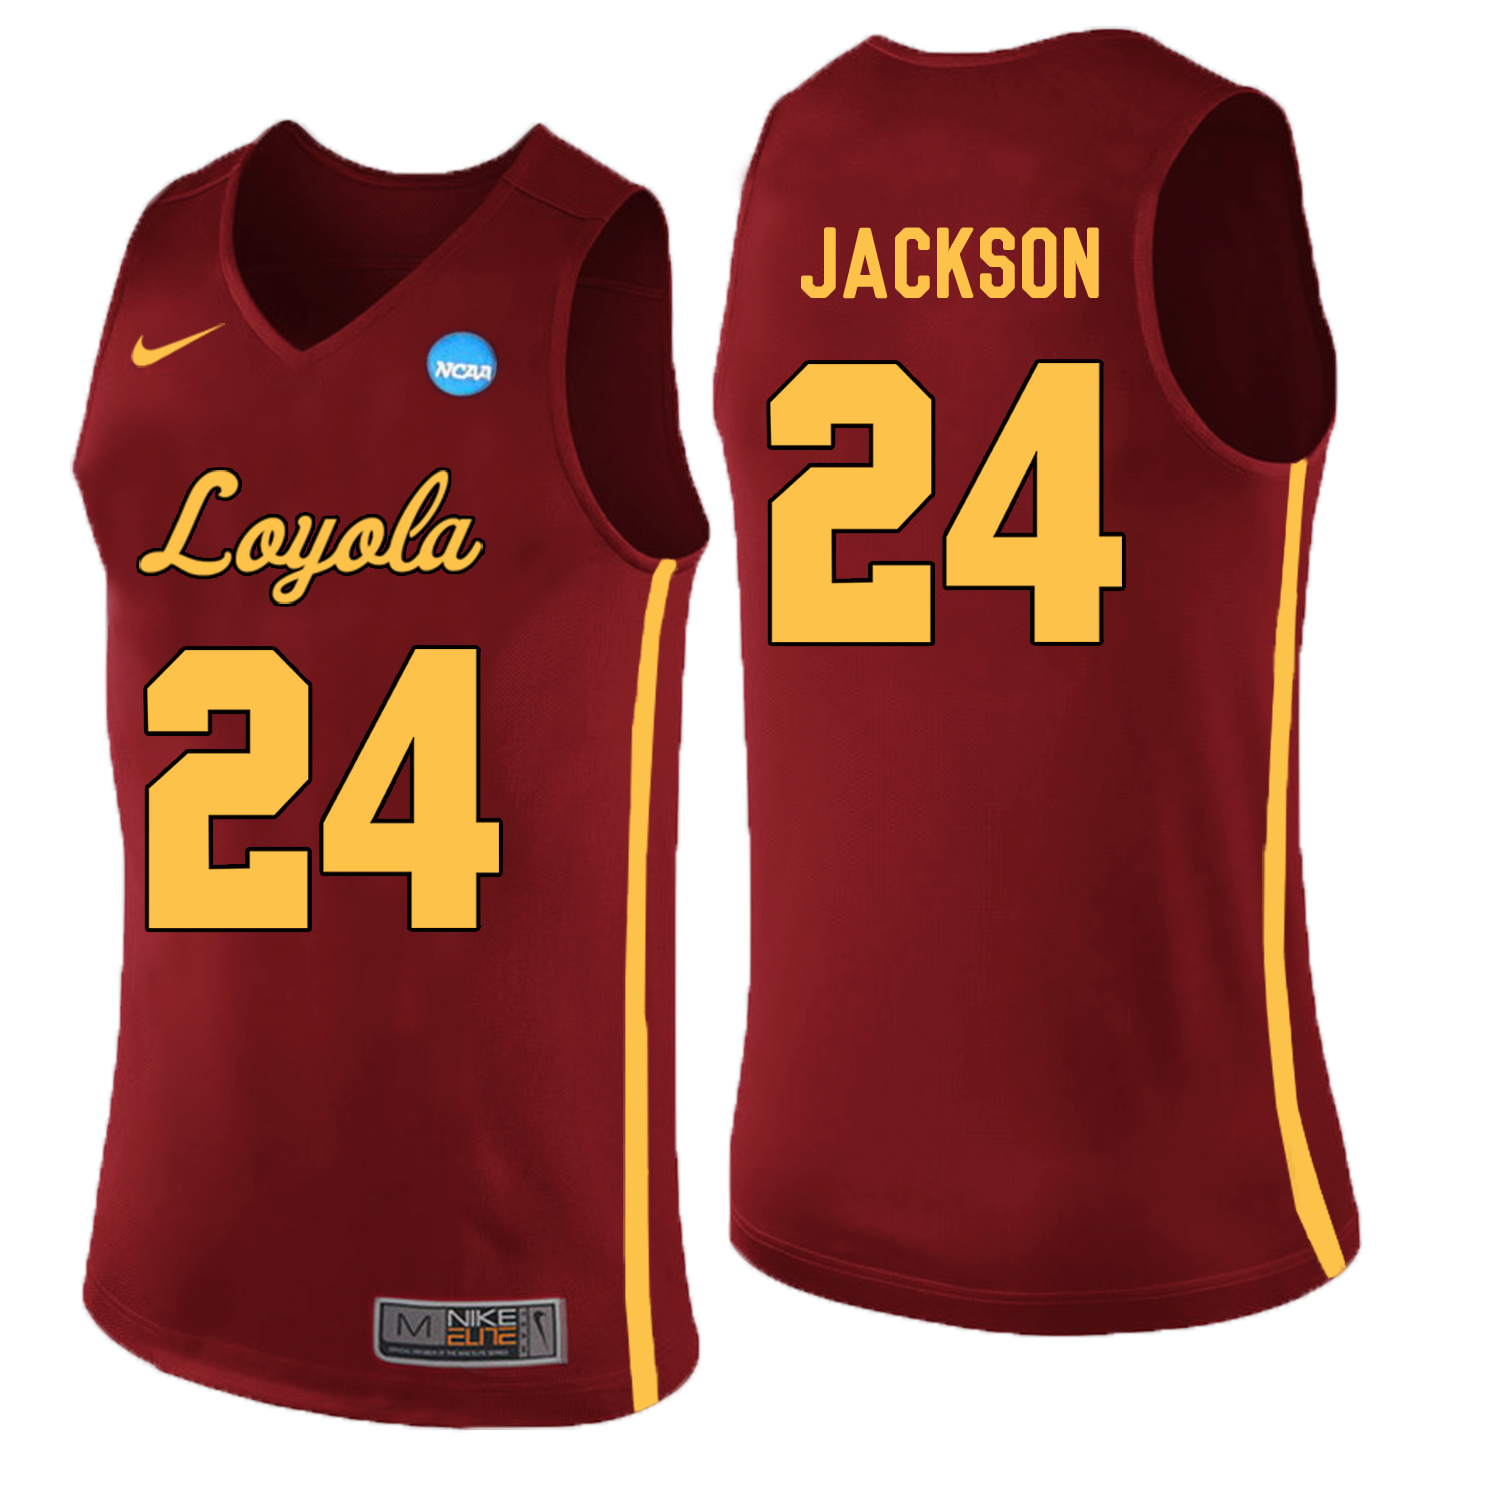 Loyola (Chi) Ramblers 24 Aundre Jackson Red College Basketball Jersey